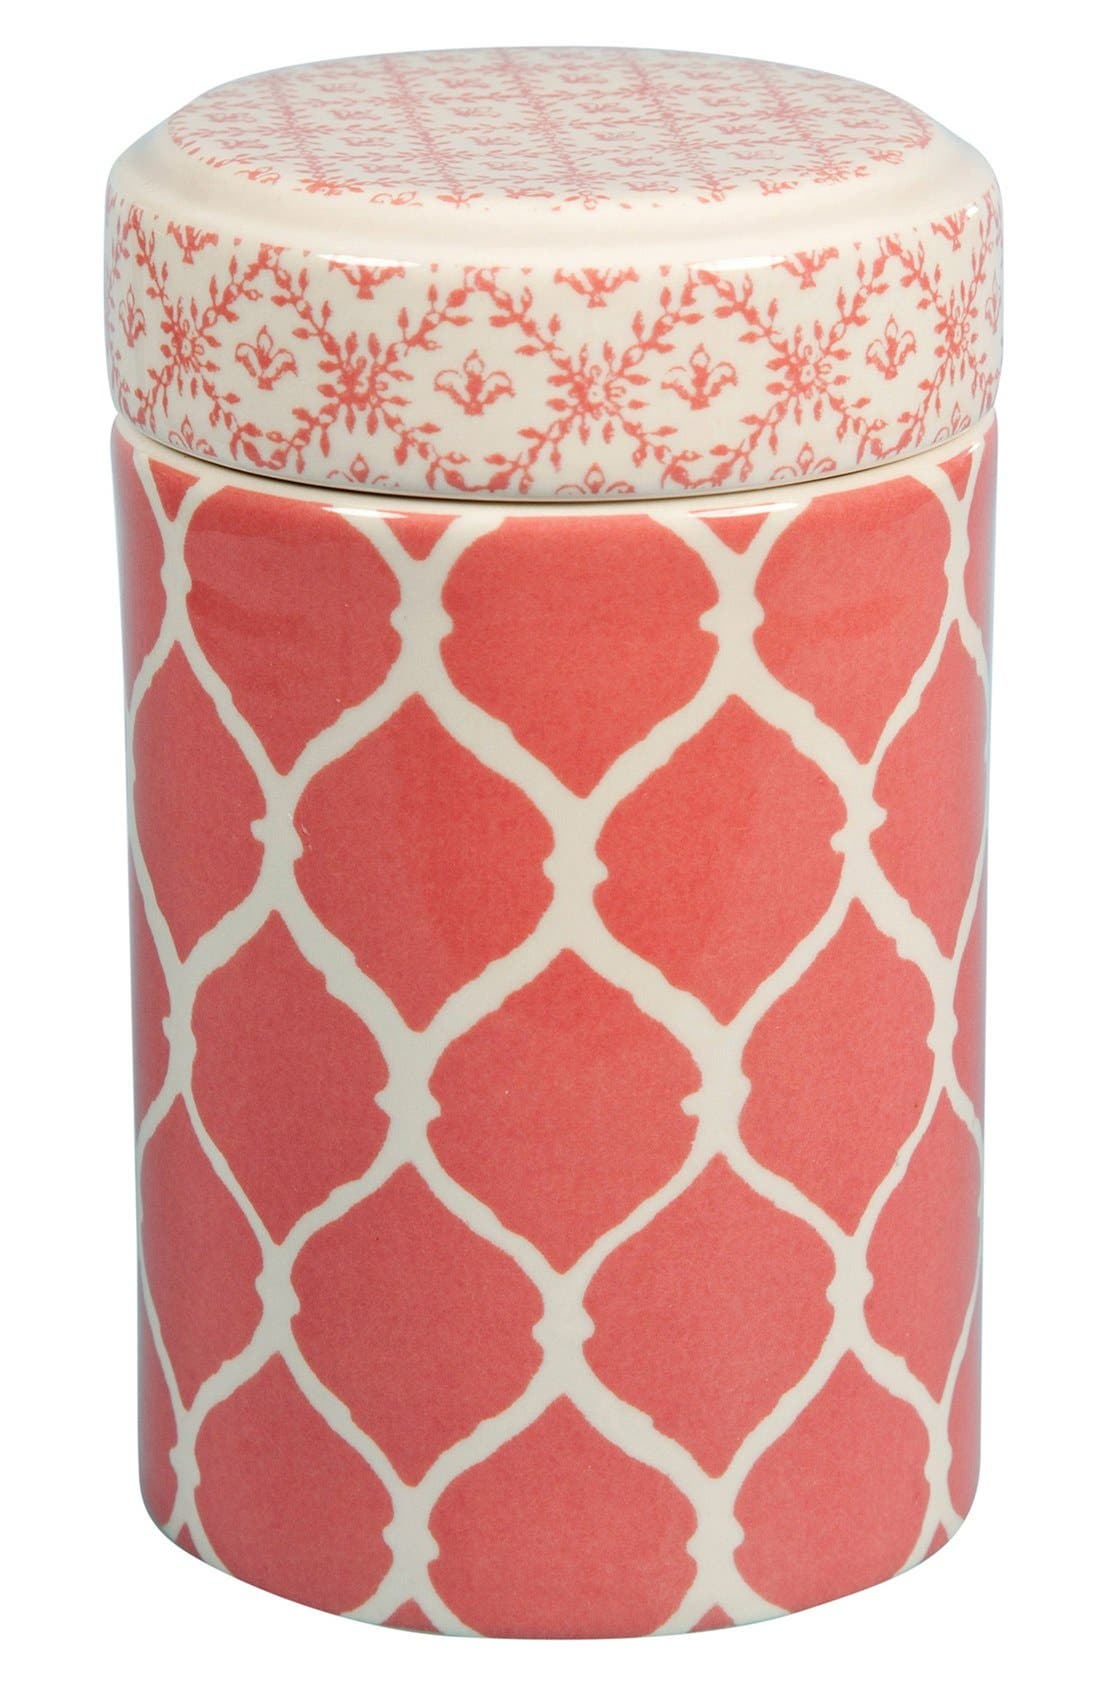 John Robshaw for TOCCA Candle,                         Main,                         color, Bentota